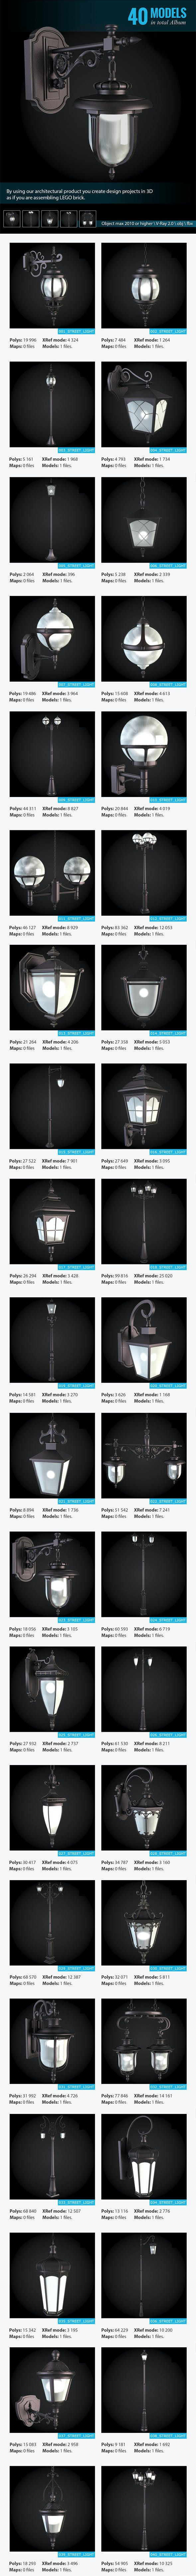 Street Lights Collection - 3DOcean Item for Sale